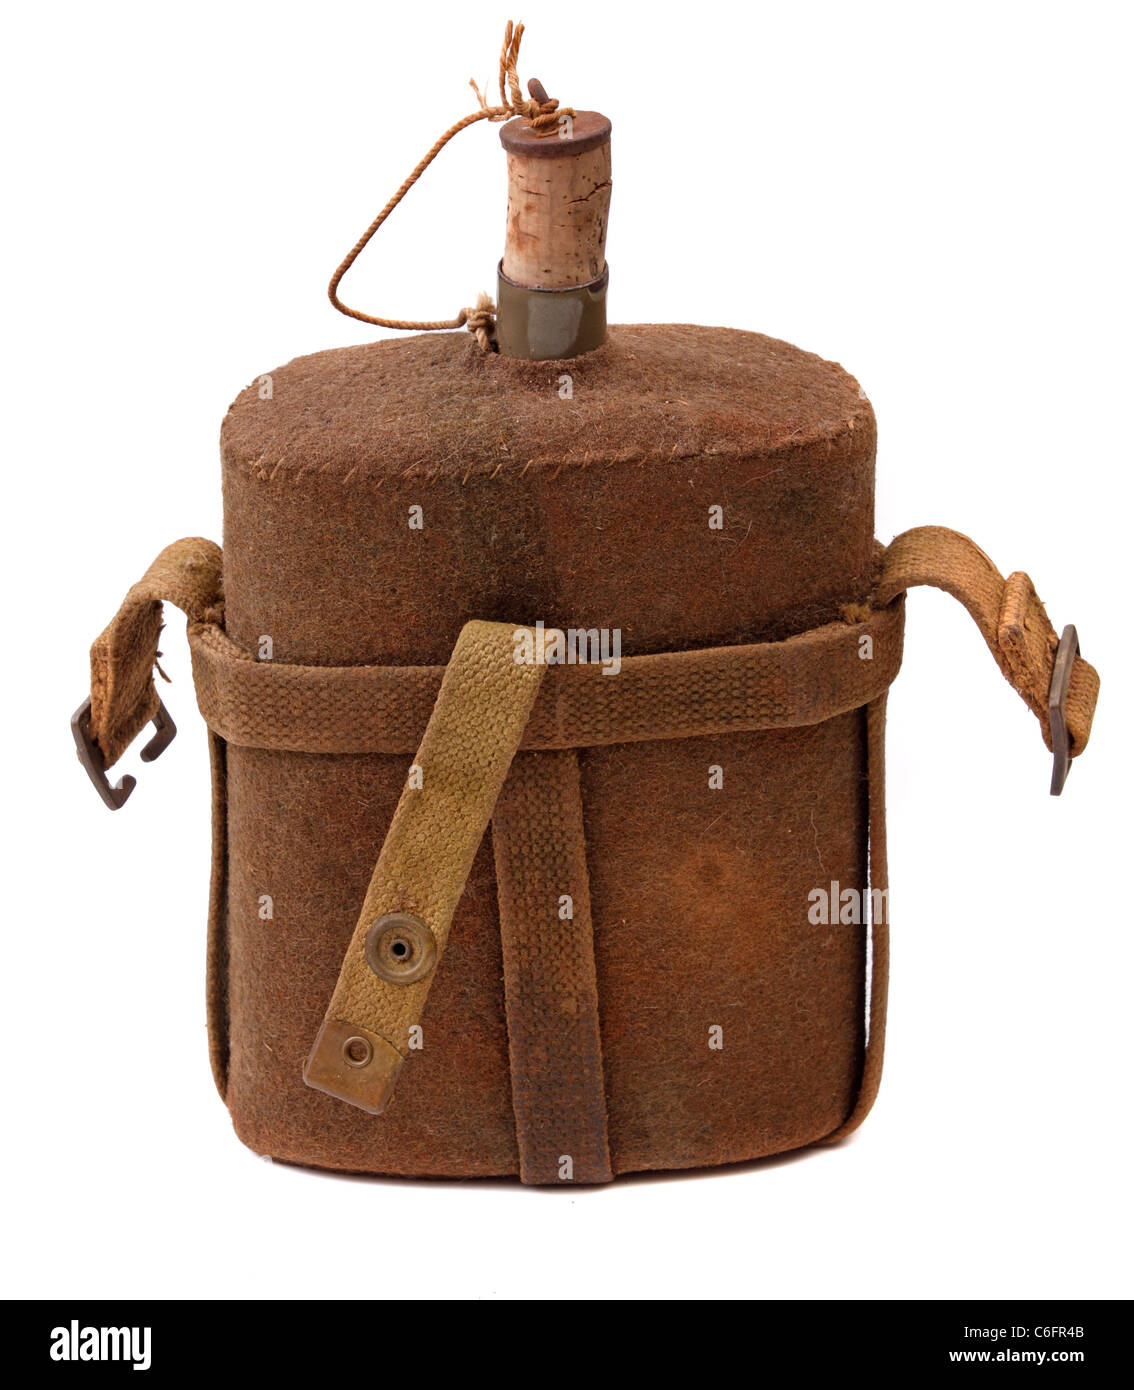 Vintage military canteen isolated on white background. - Stock Image